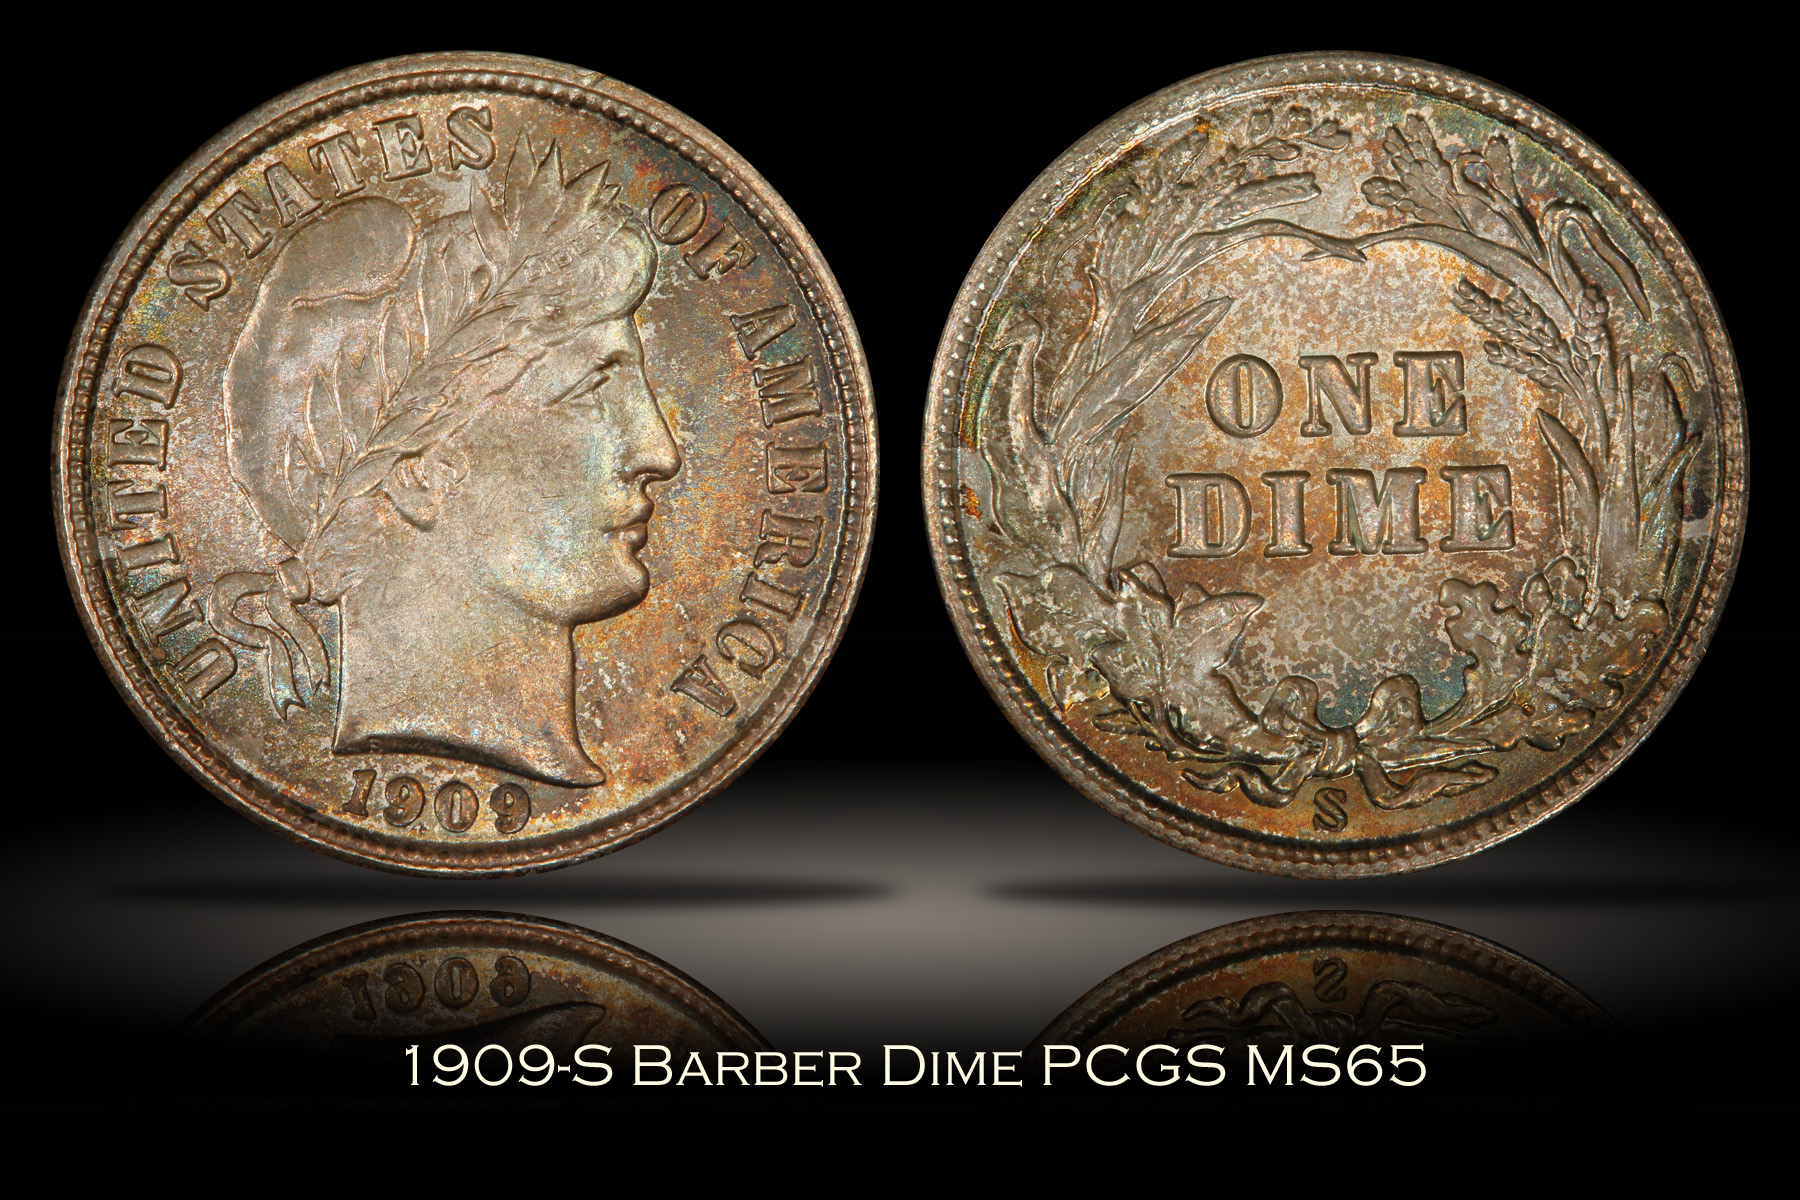 1909-S Barber Dime PCGS MS65